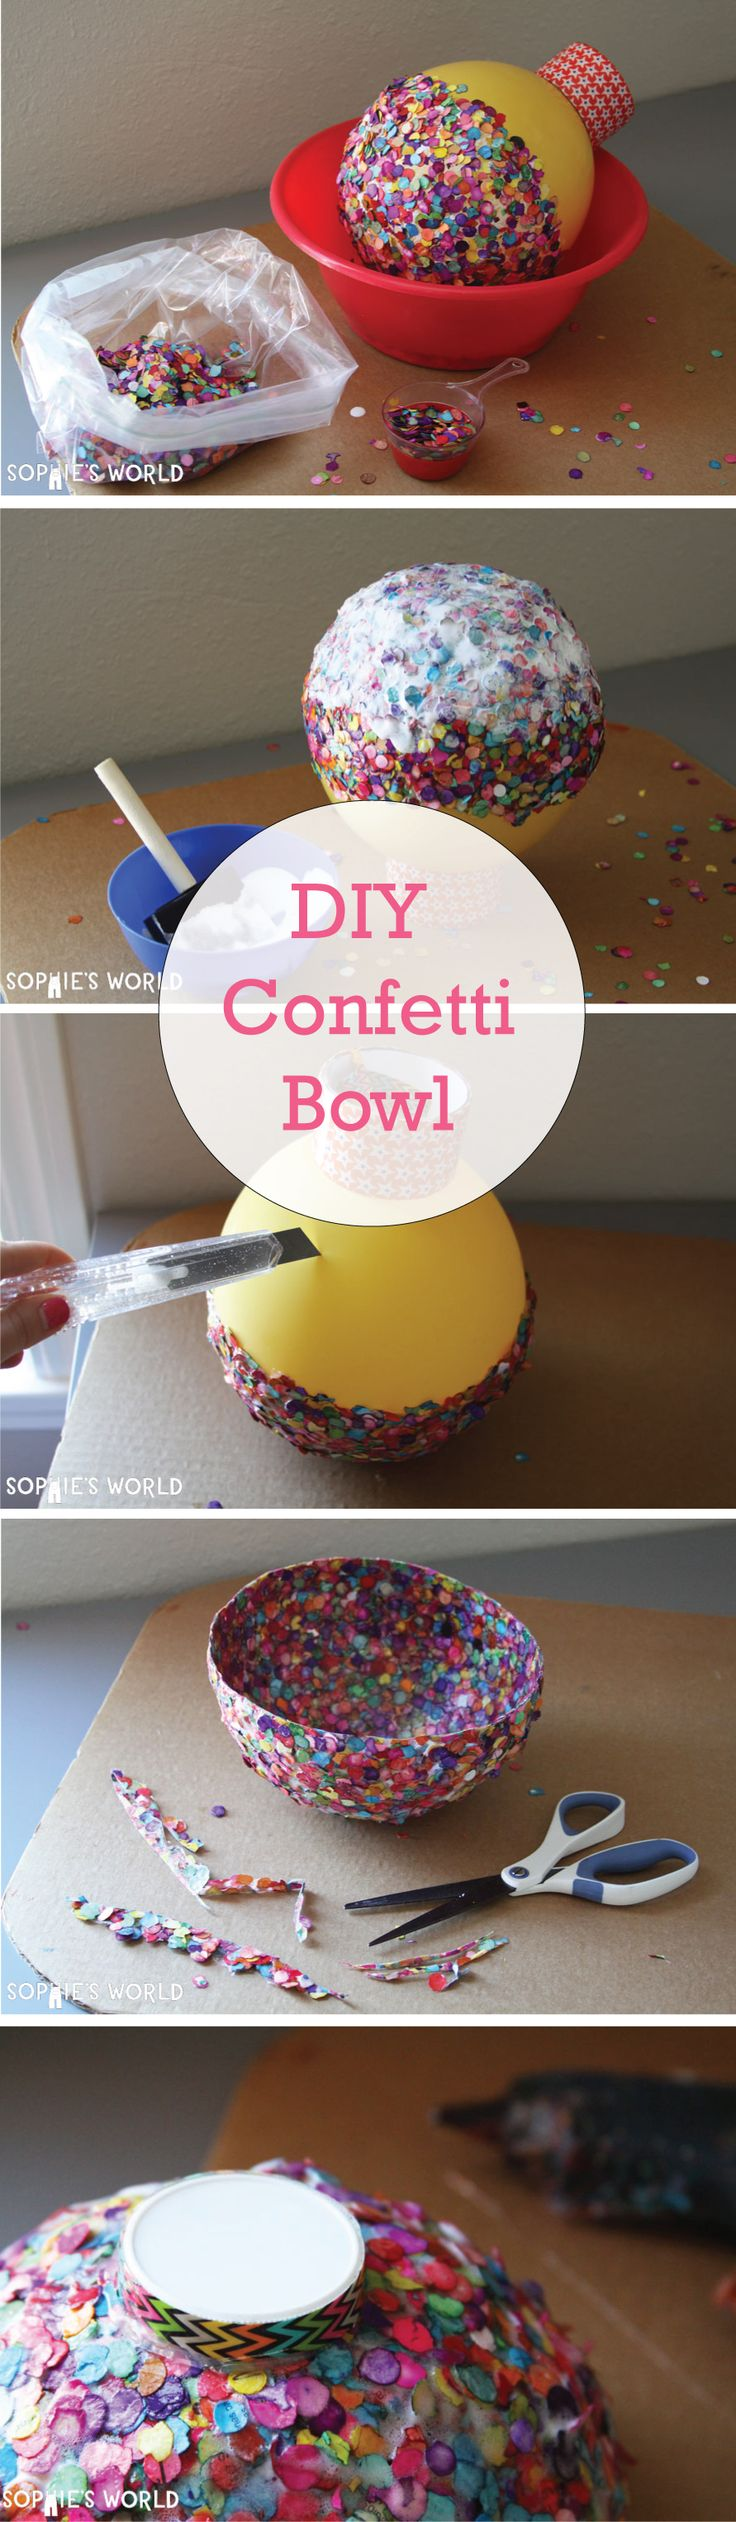 DIY Confetti Bowl #sophies #world #diy #confetti #craft #crafts #decor http://sophie-world.com/crafts/confetti-bowl